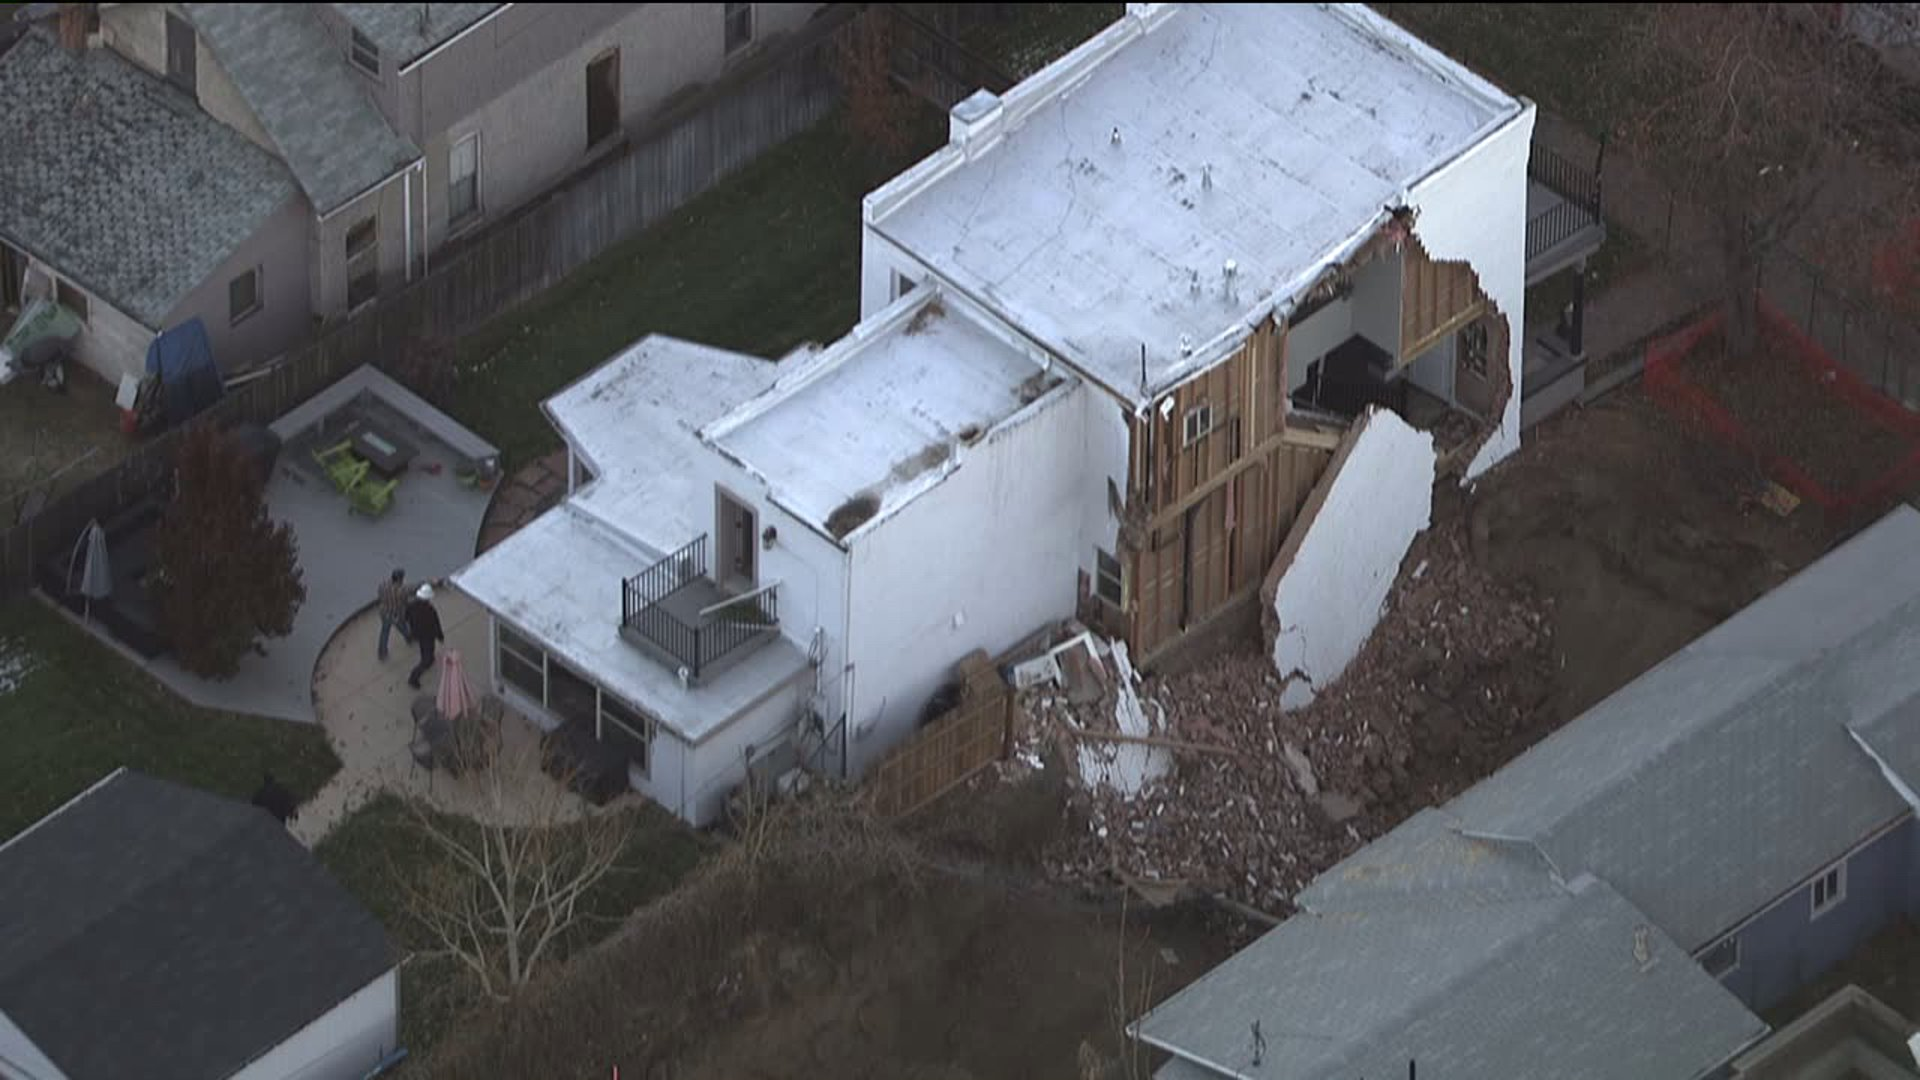 Wall collapses at home near 24th and Glenarm in Denver